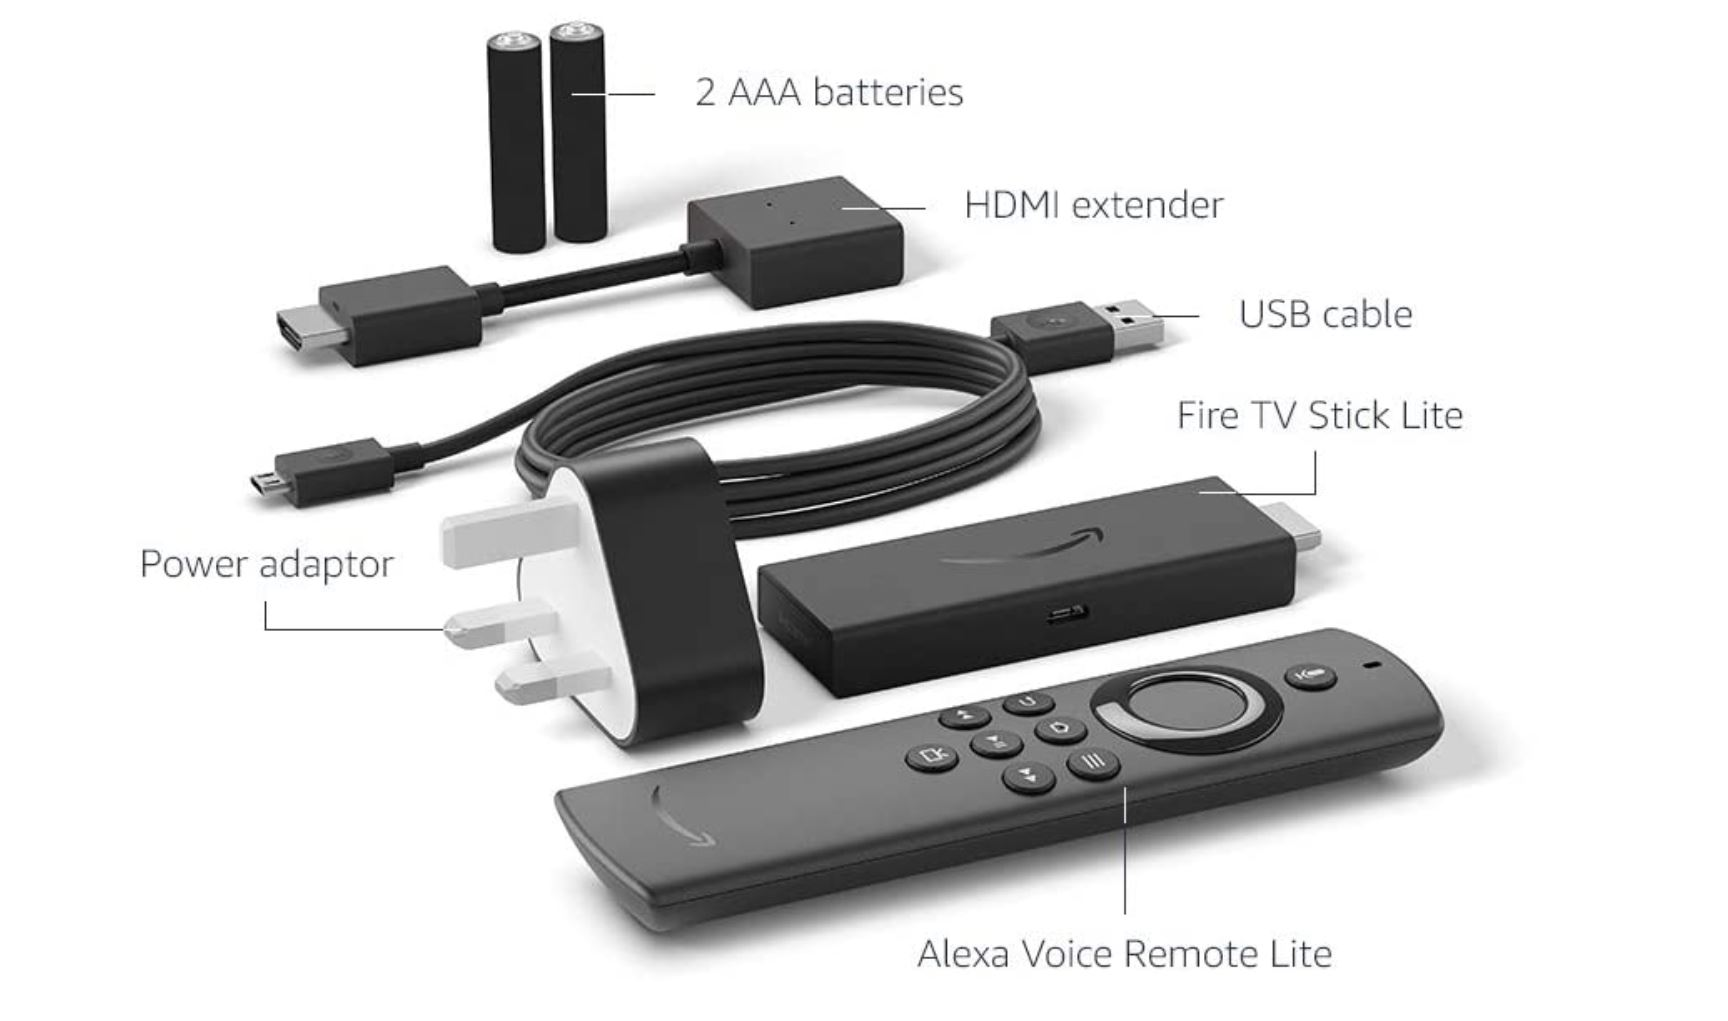 You get everyting you need with the Fire TV Stick Lite